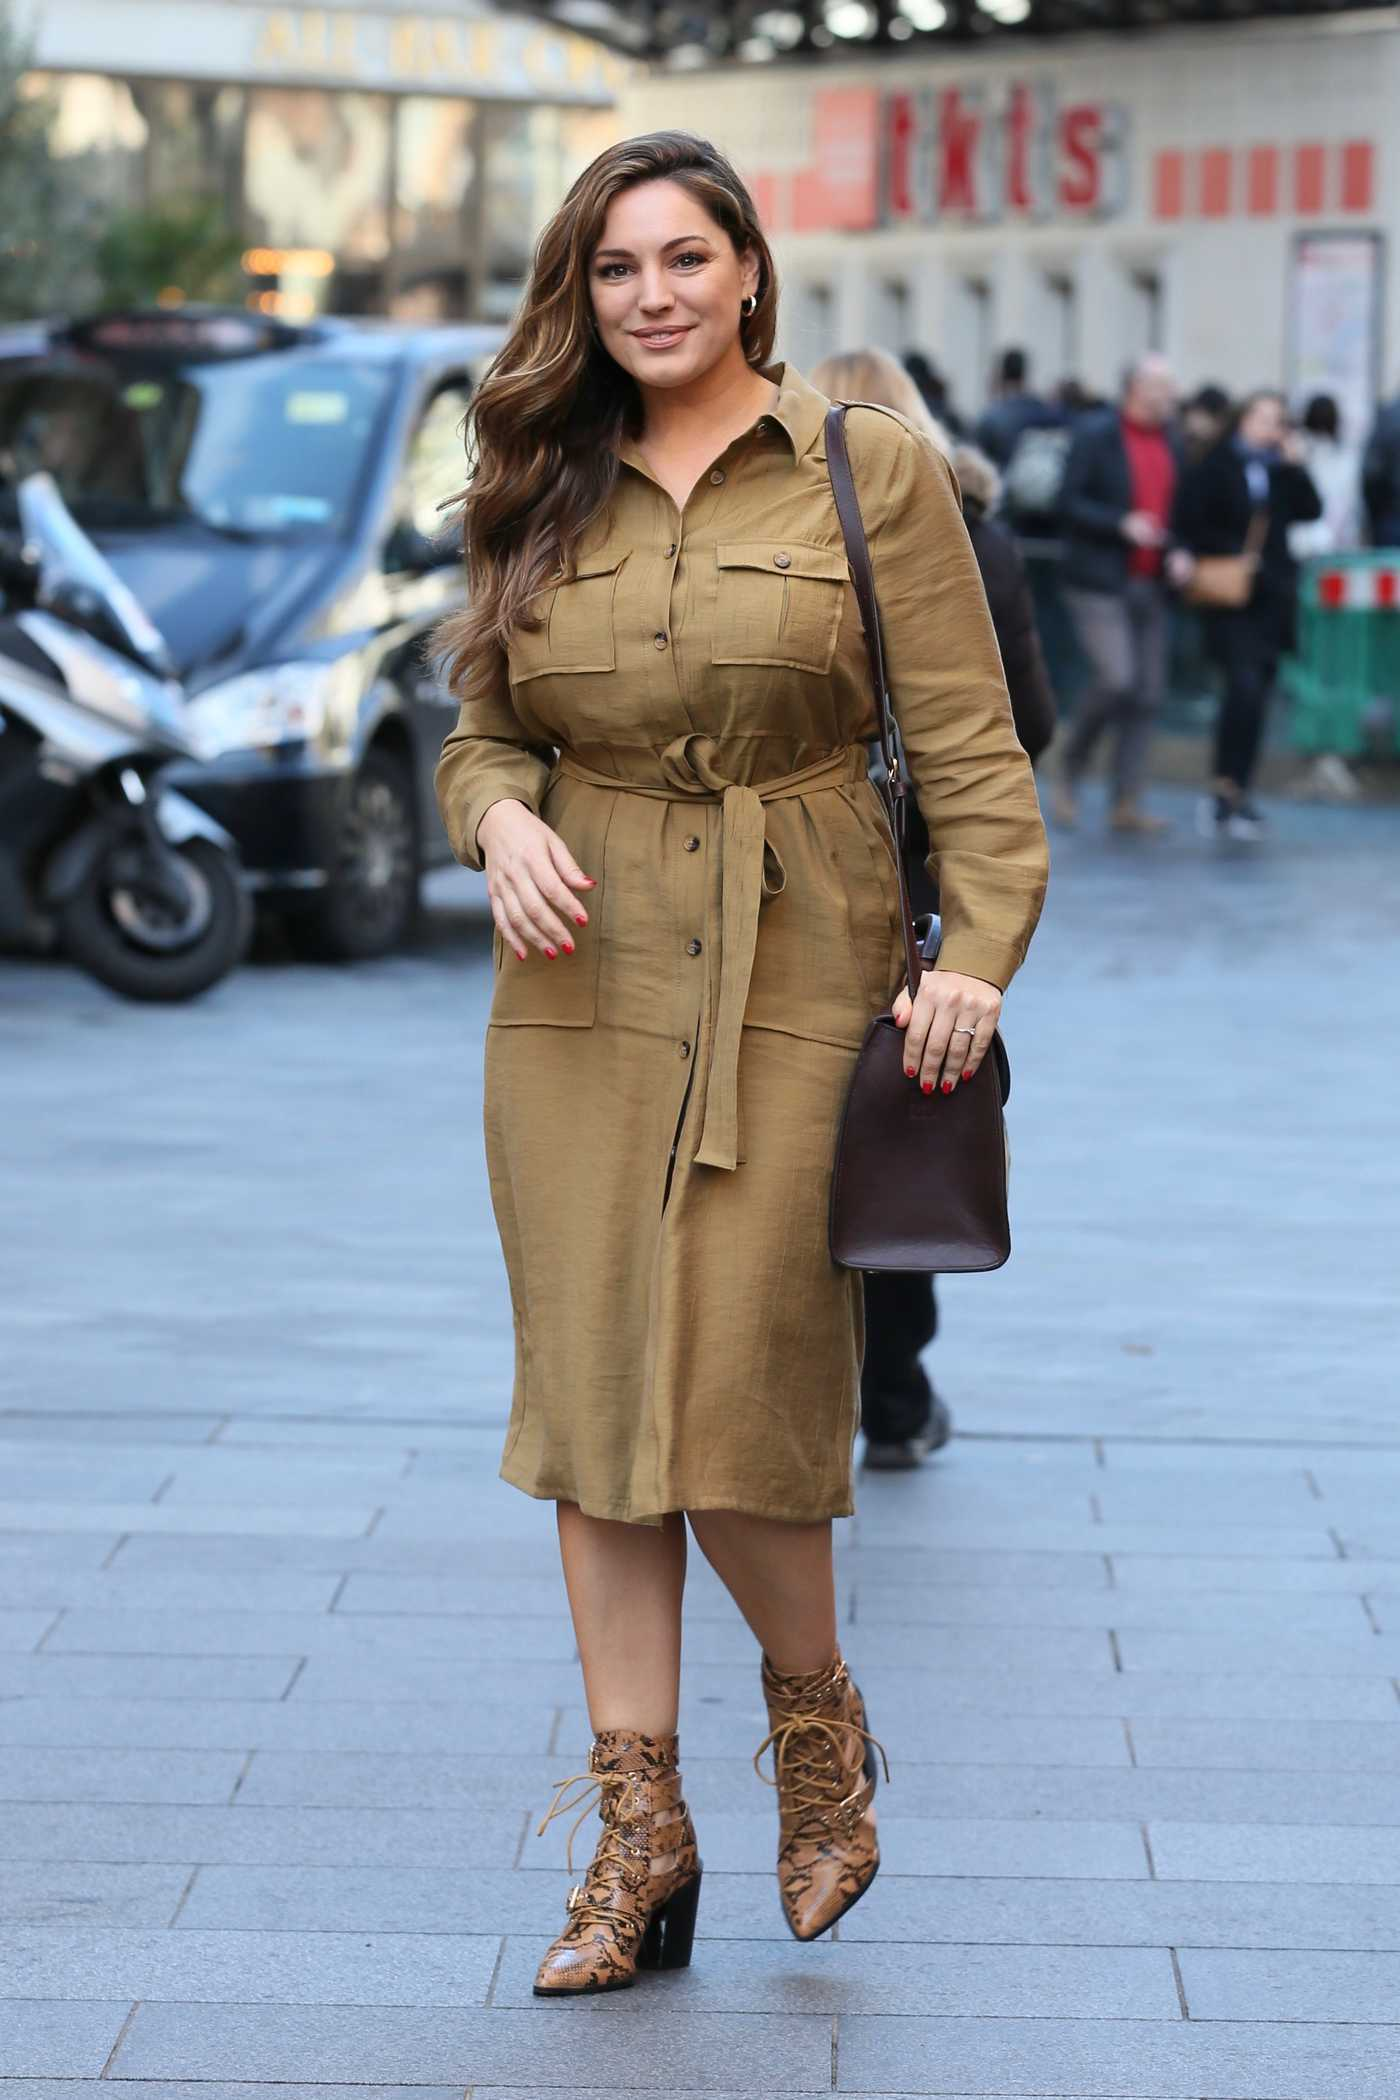 Kelly Brook in a Beige Dress Arrives at Global Radio Studios in London 02/19/2019